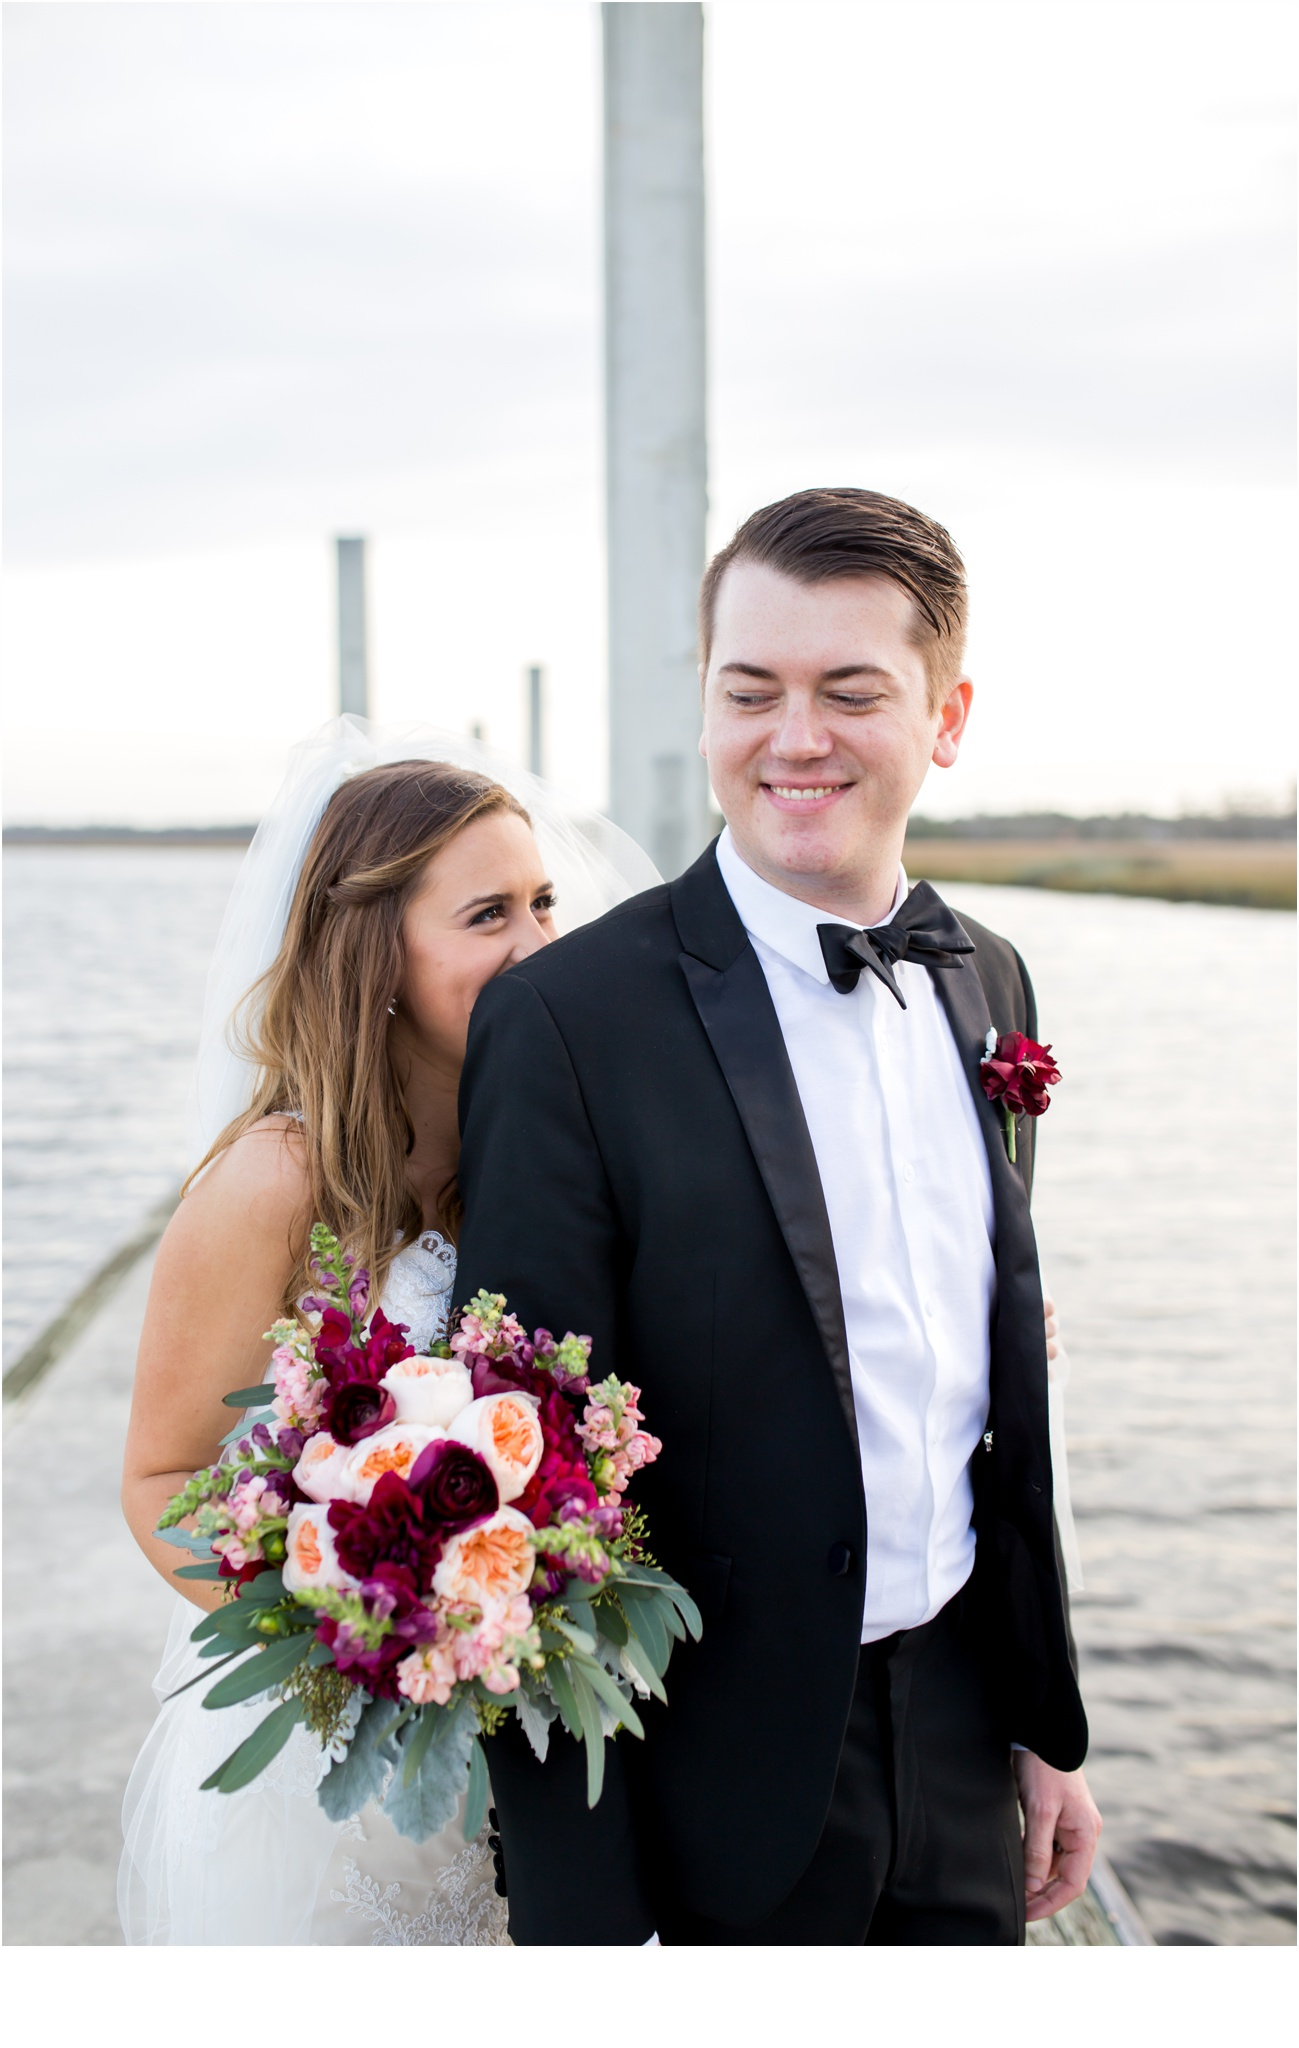 Rainey_Gregg_Photography_St._Simons_Island_Georgia_California_Wedding_Portrait_Photography_0878.jpg